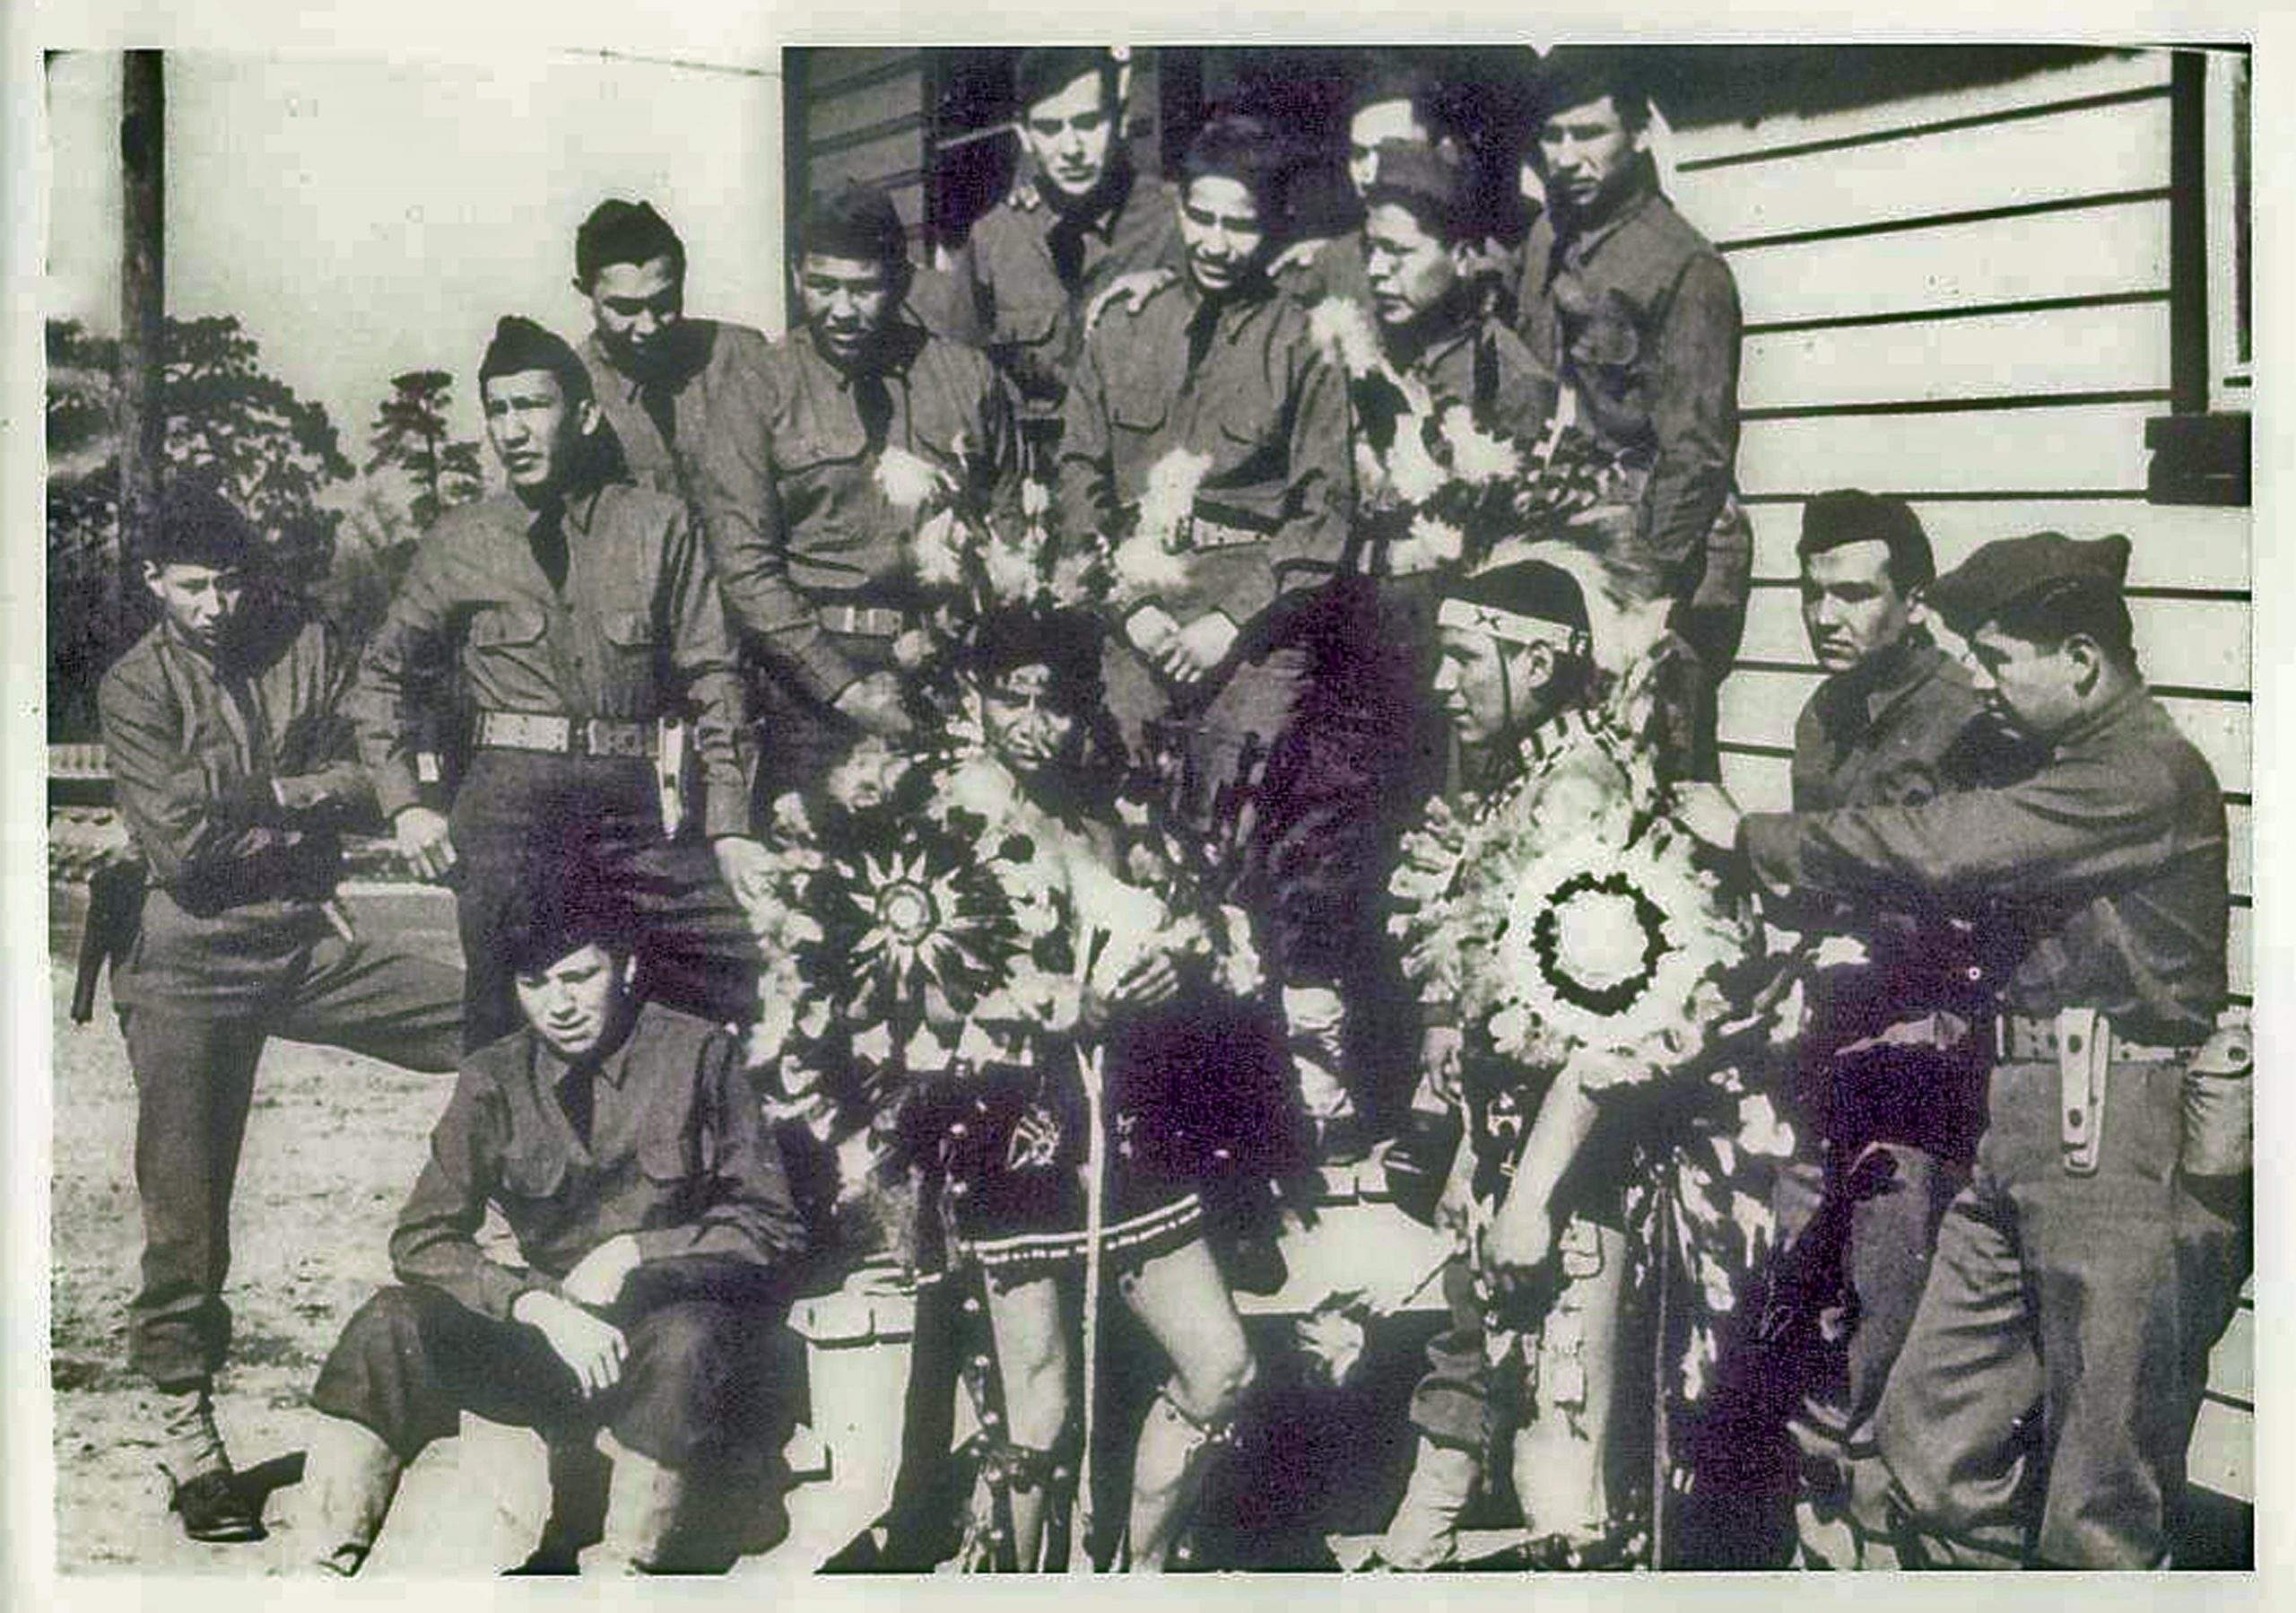 COMANCHE Code Talkers at Fort Benning in 1941. Image in the Public Domain.